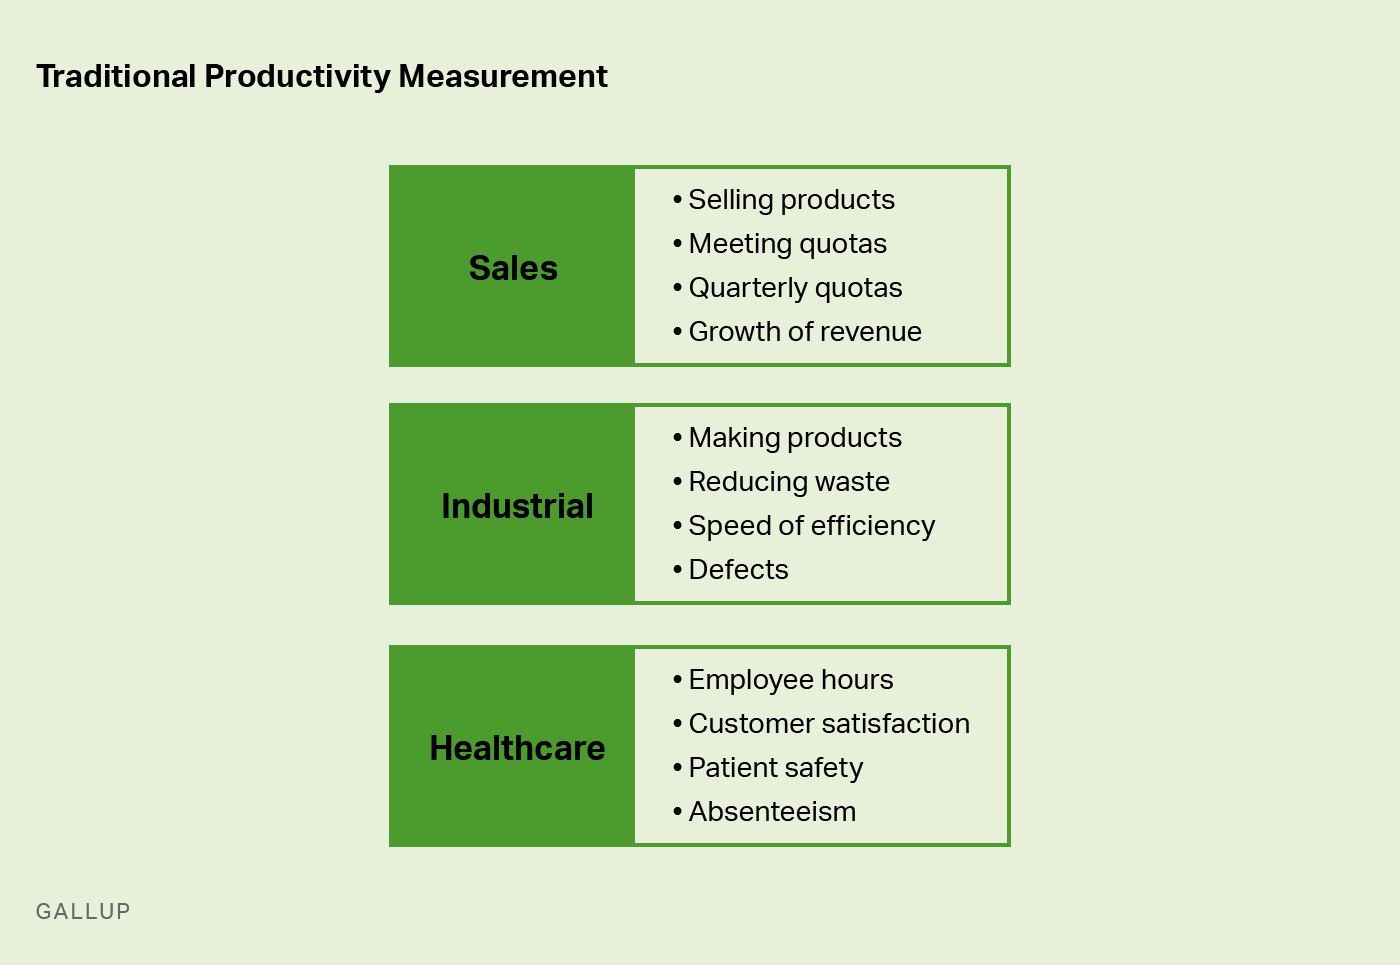 graphic with examples of traditional productivity measurement types